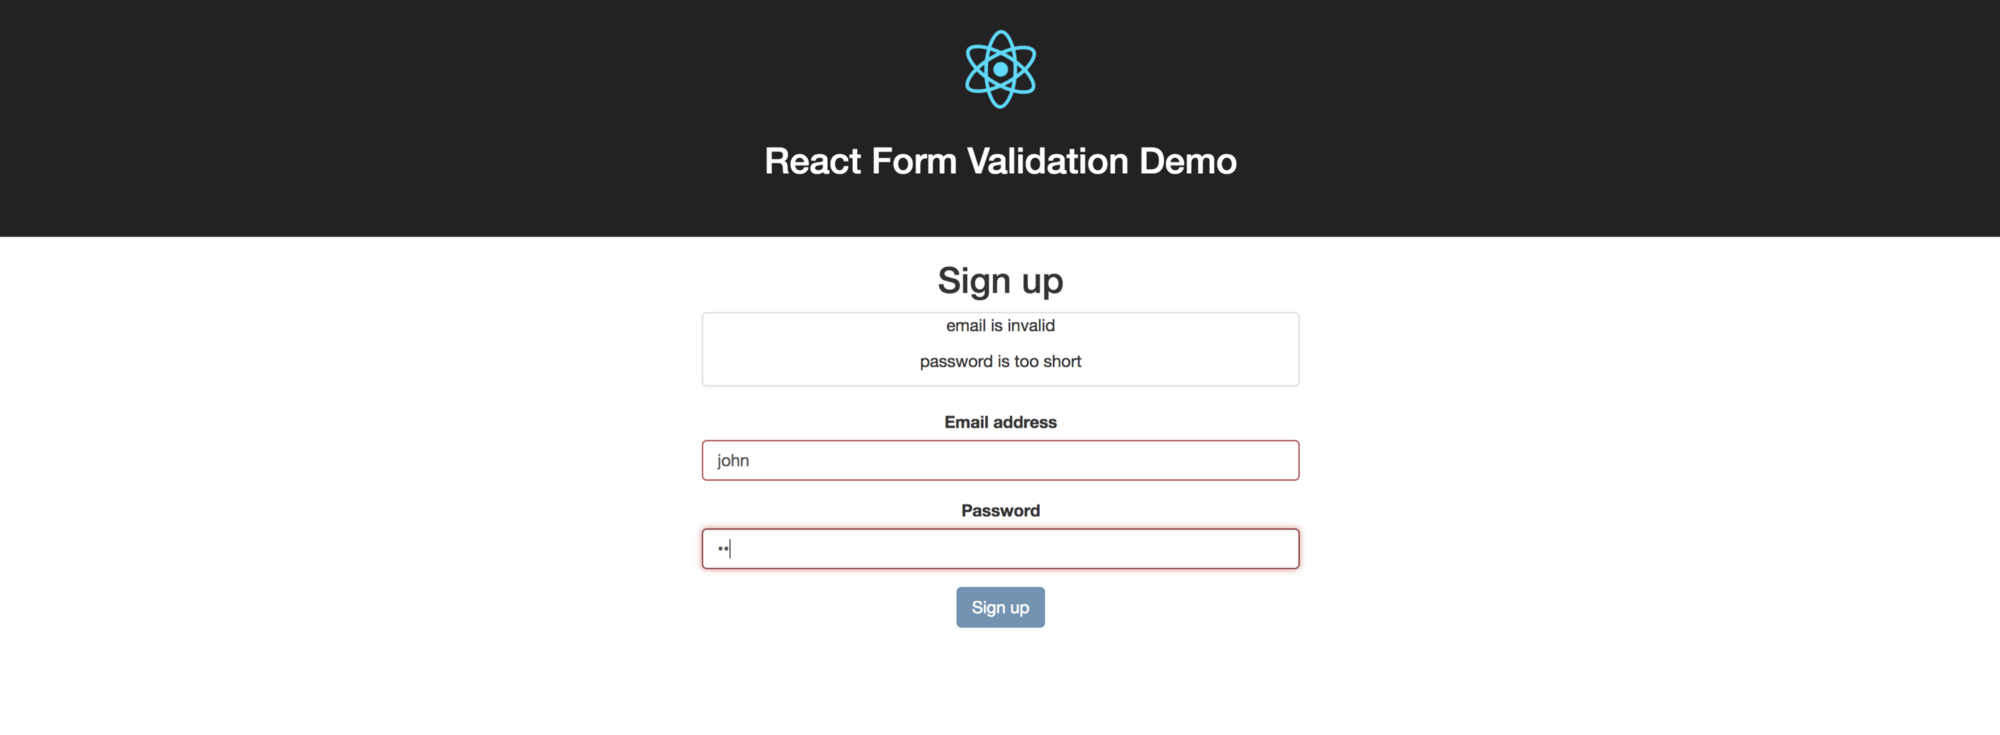 Валидация форм в ReactJS | How to do Simple Form Validation in Reactjs